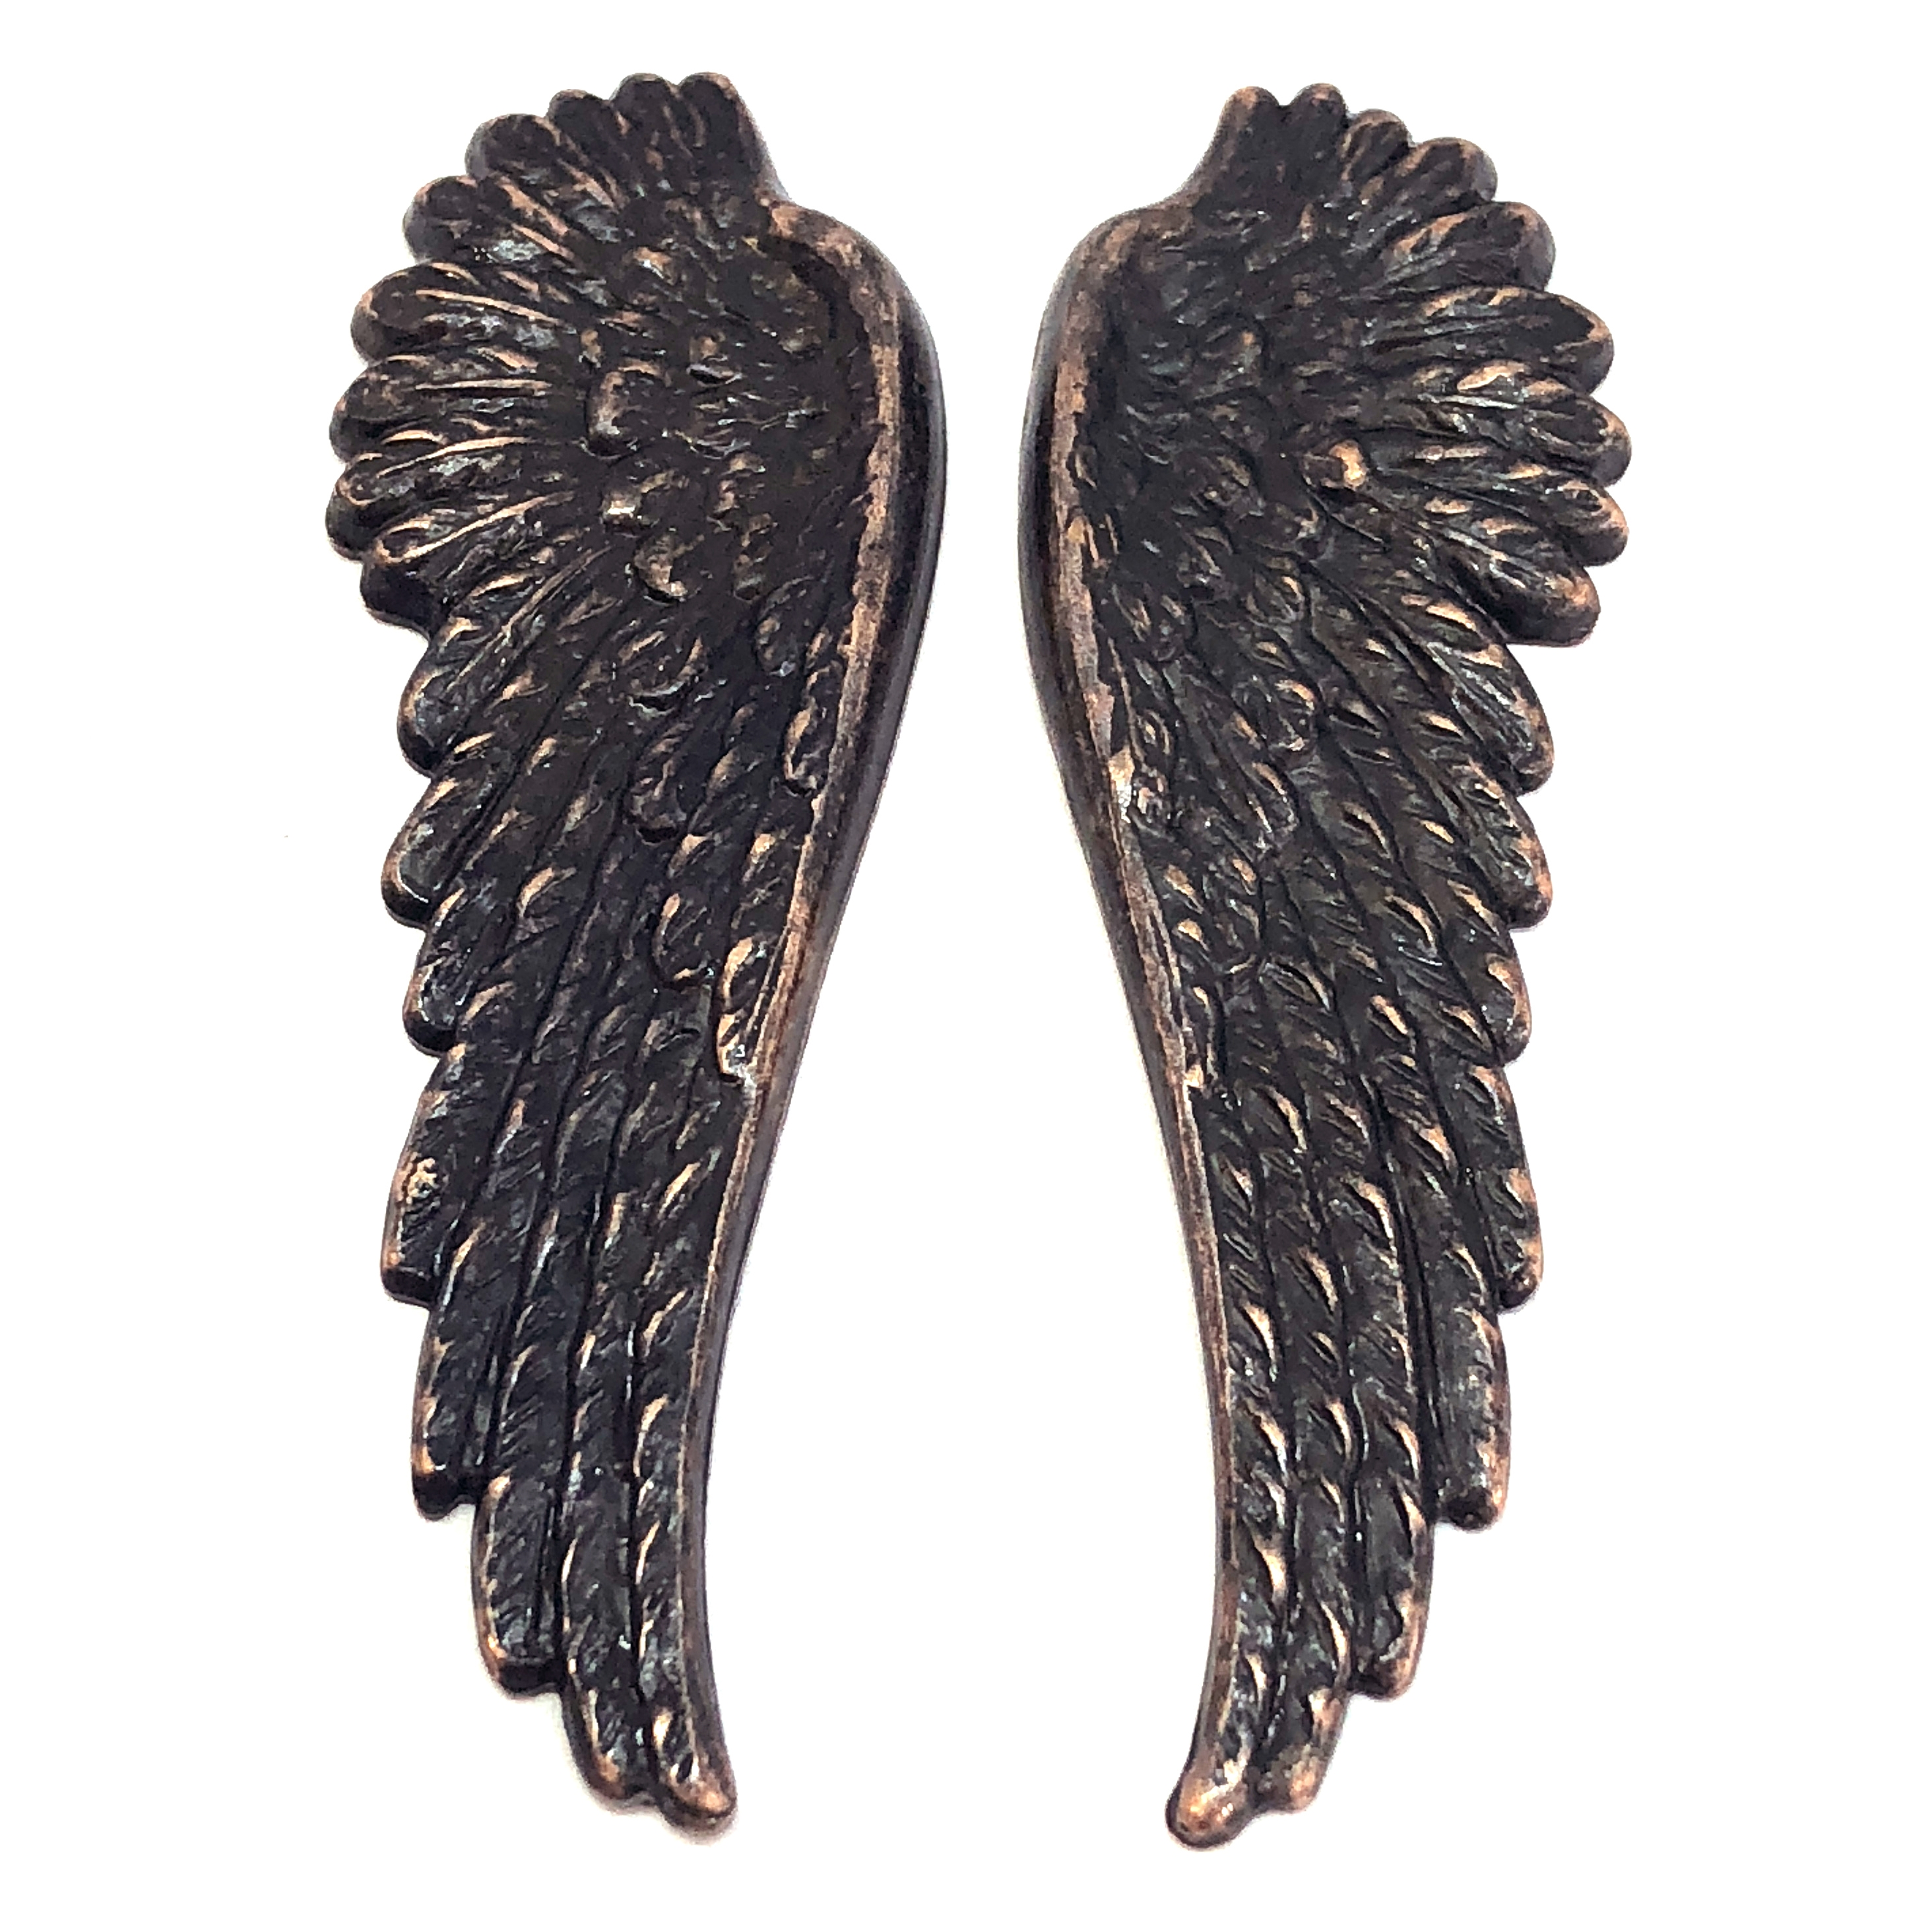 brass wings, bird wings, rusted iron, 08571, copper accents, copper, wings, vintage jewelry supplies, brass jewelry parts, jewelry making supplies, US made, nickel free, Bsue Boutiques